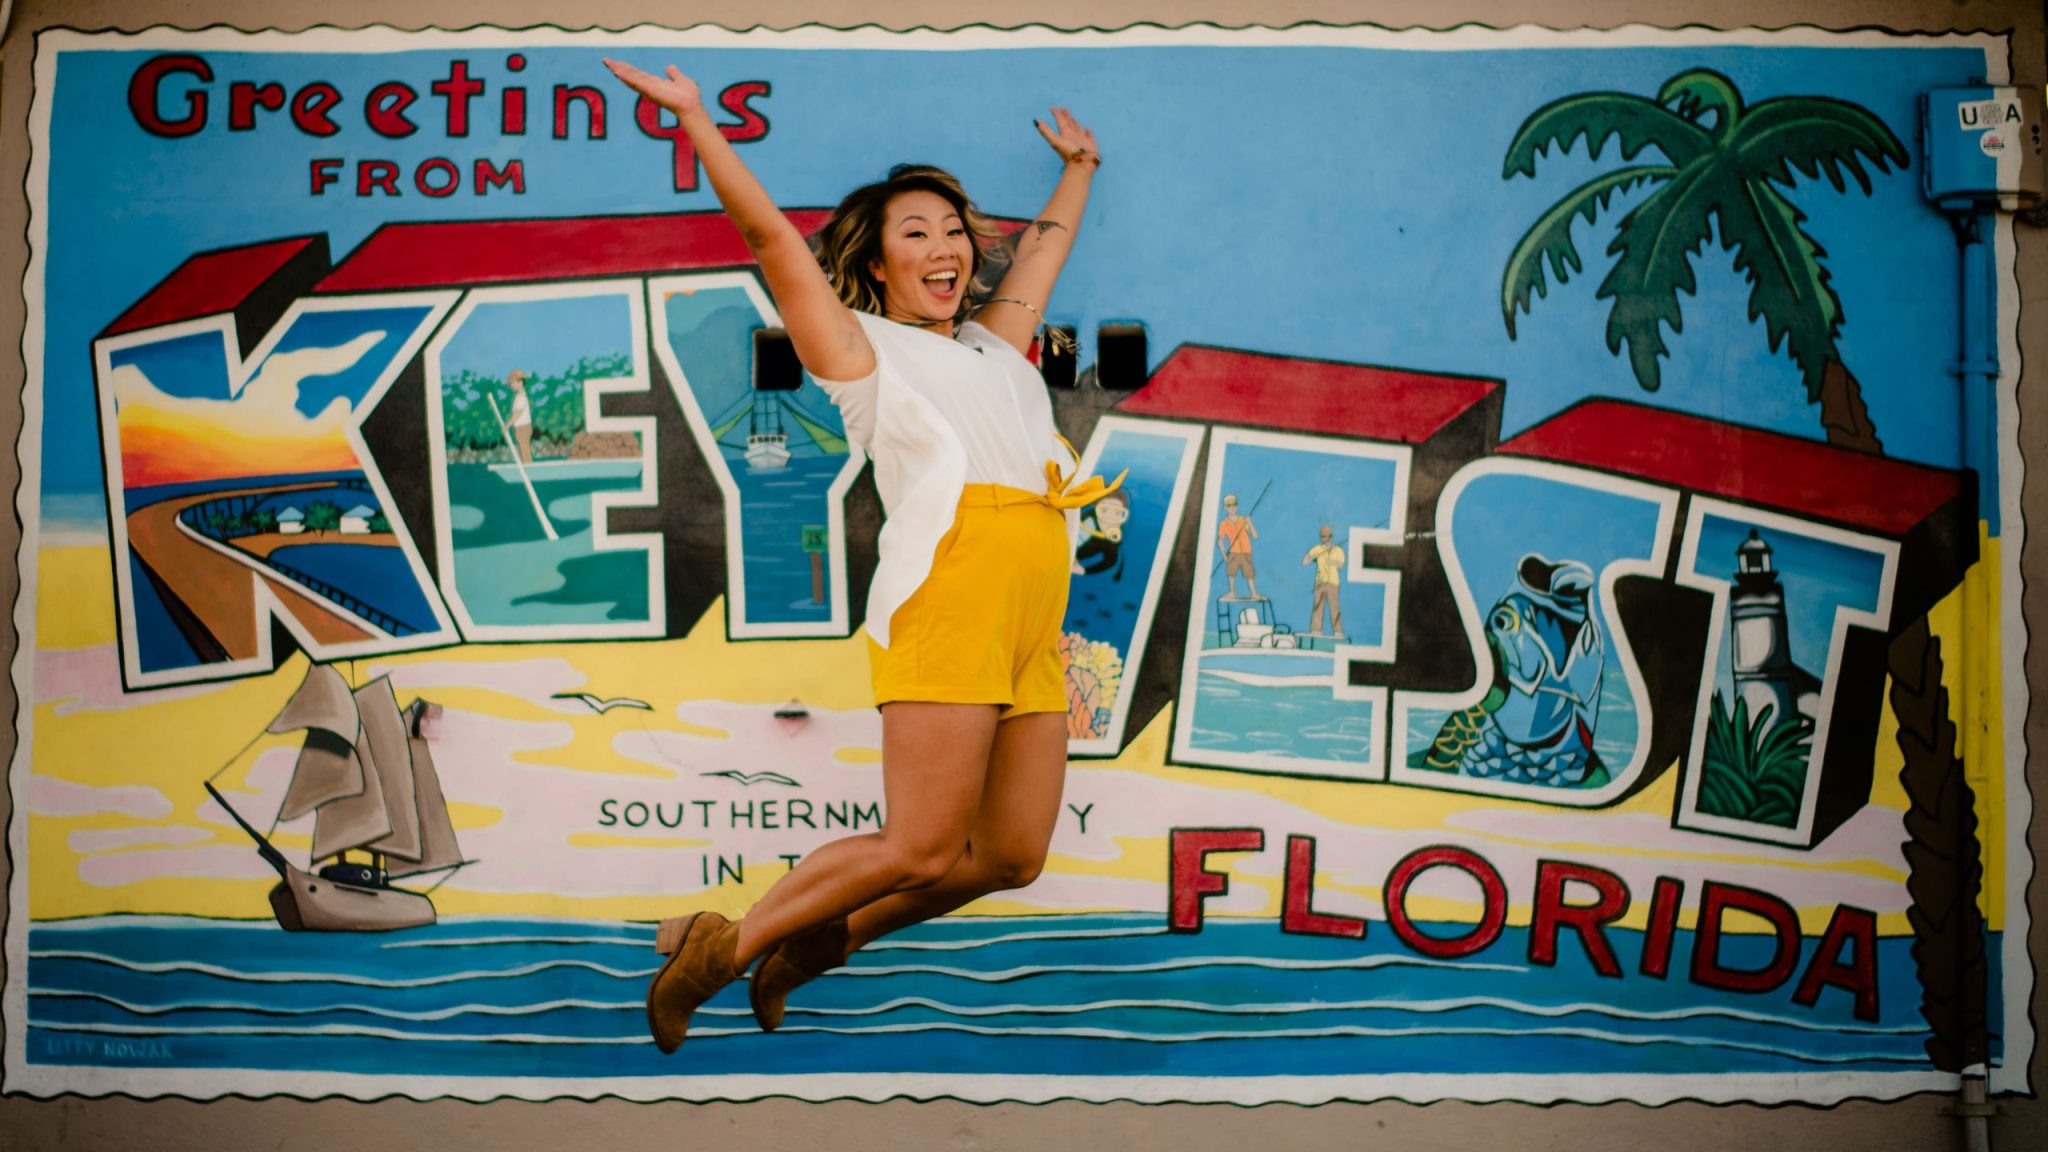 woman jumping in front of a sign for a branding photoshoot